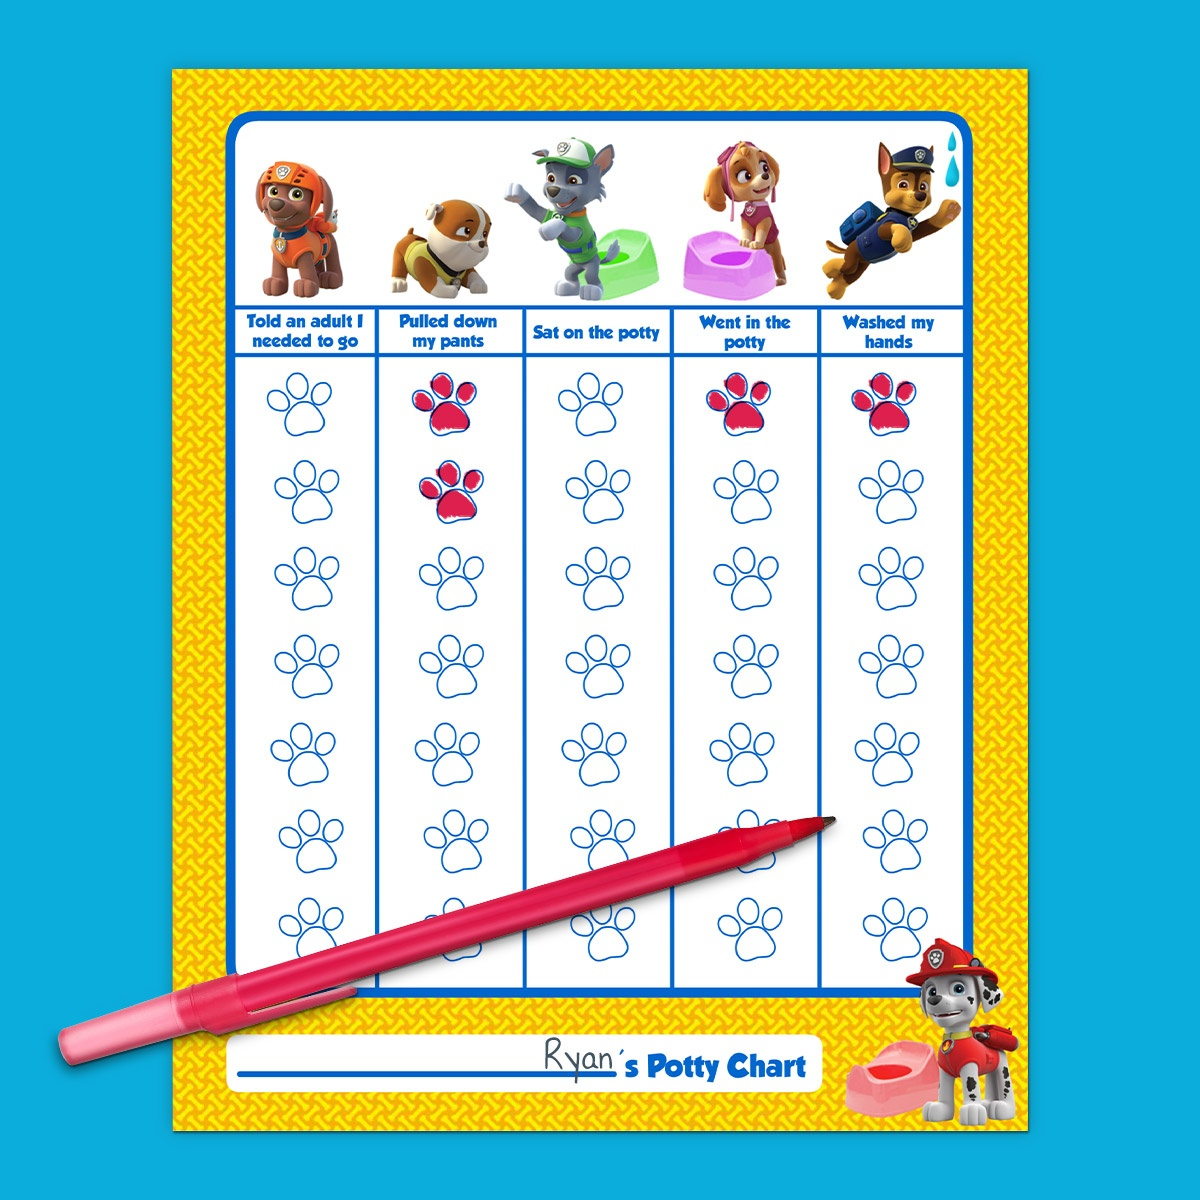 Paw Patrol Potty Training Chart | Nickelodeon Parents - Free Printable Potty Training Charts